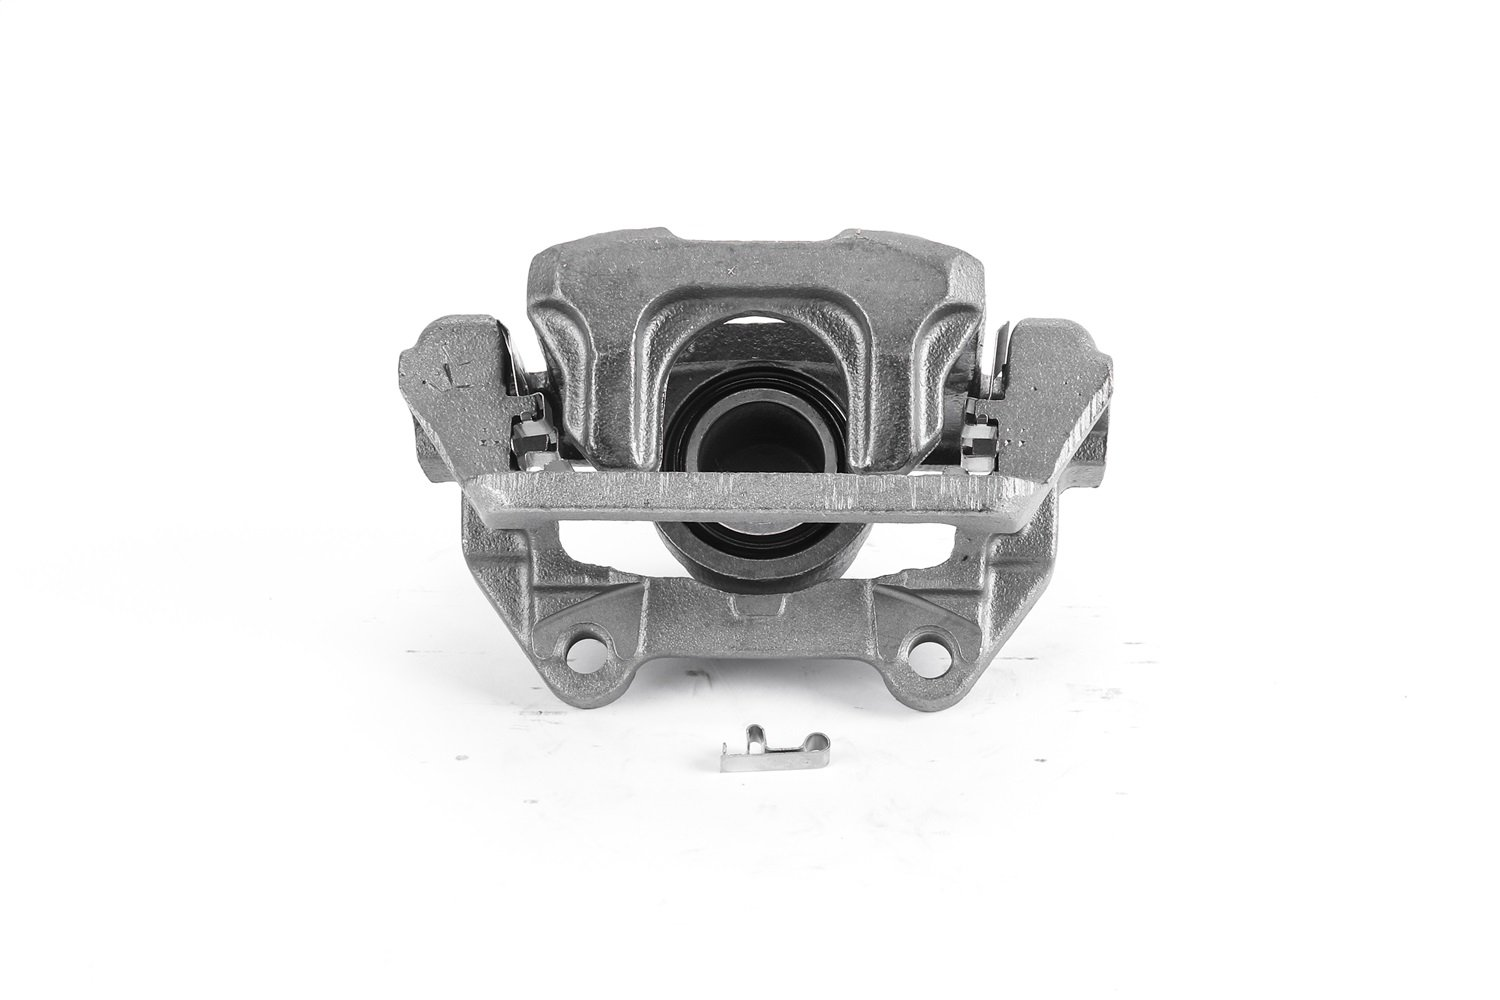 Power Stop L3238 Rear Autospecialty Stock Replacement Caliper